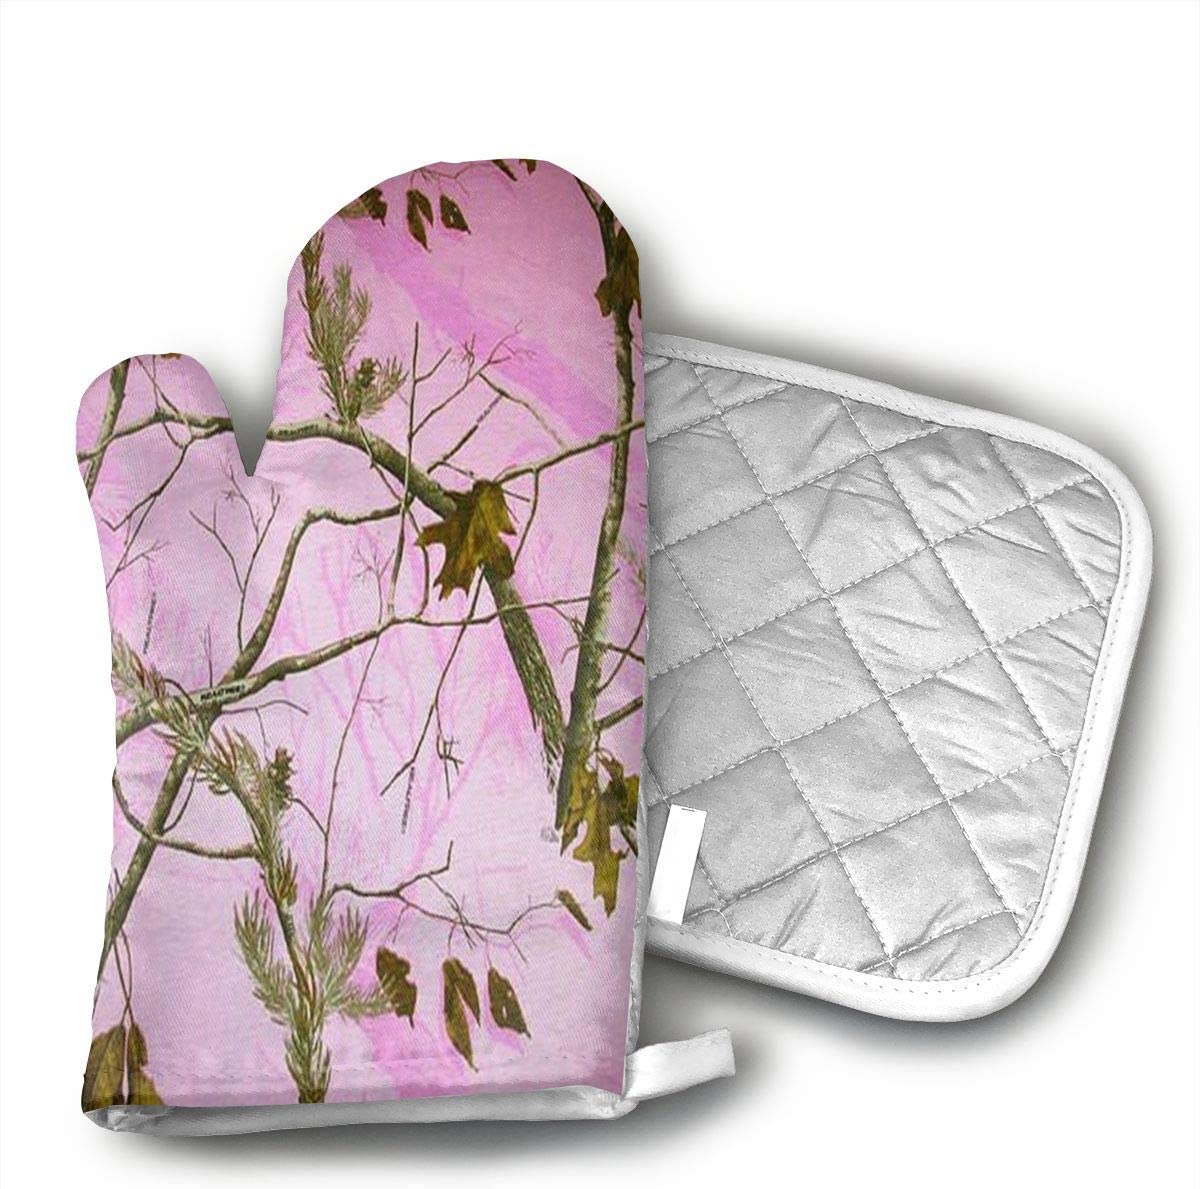 Pink Realtree Camo Oven Mitts, Heat Resistant Cooking Glove Quilted Cotton Lining- Heat Resistant Pot Holder Gloves for Grilling & Baking Gloves BBQ Oven Gloves Kitchen Tools Gift